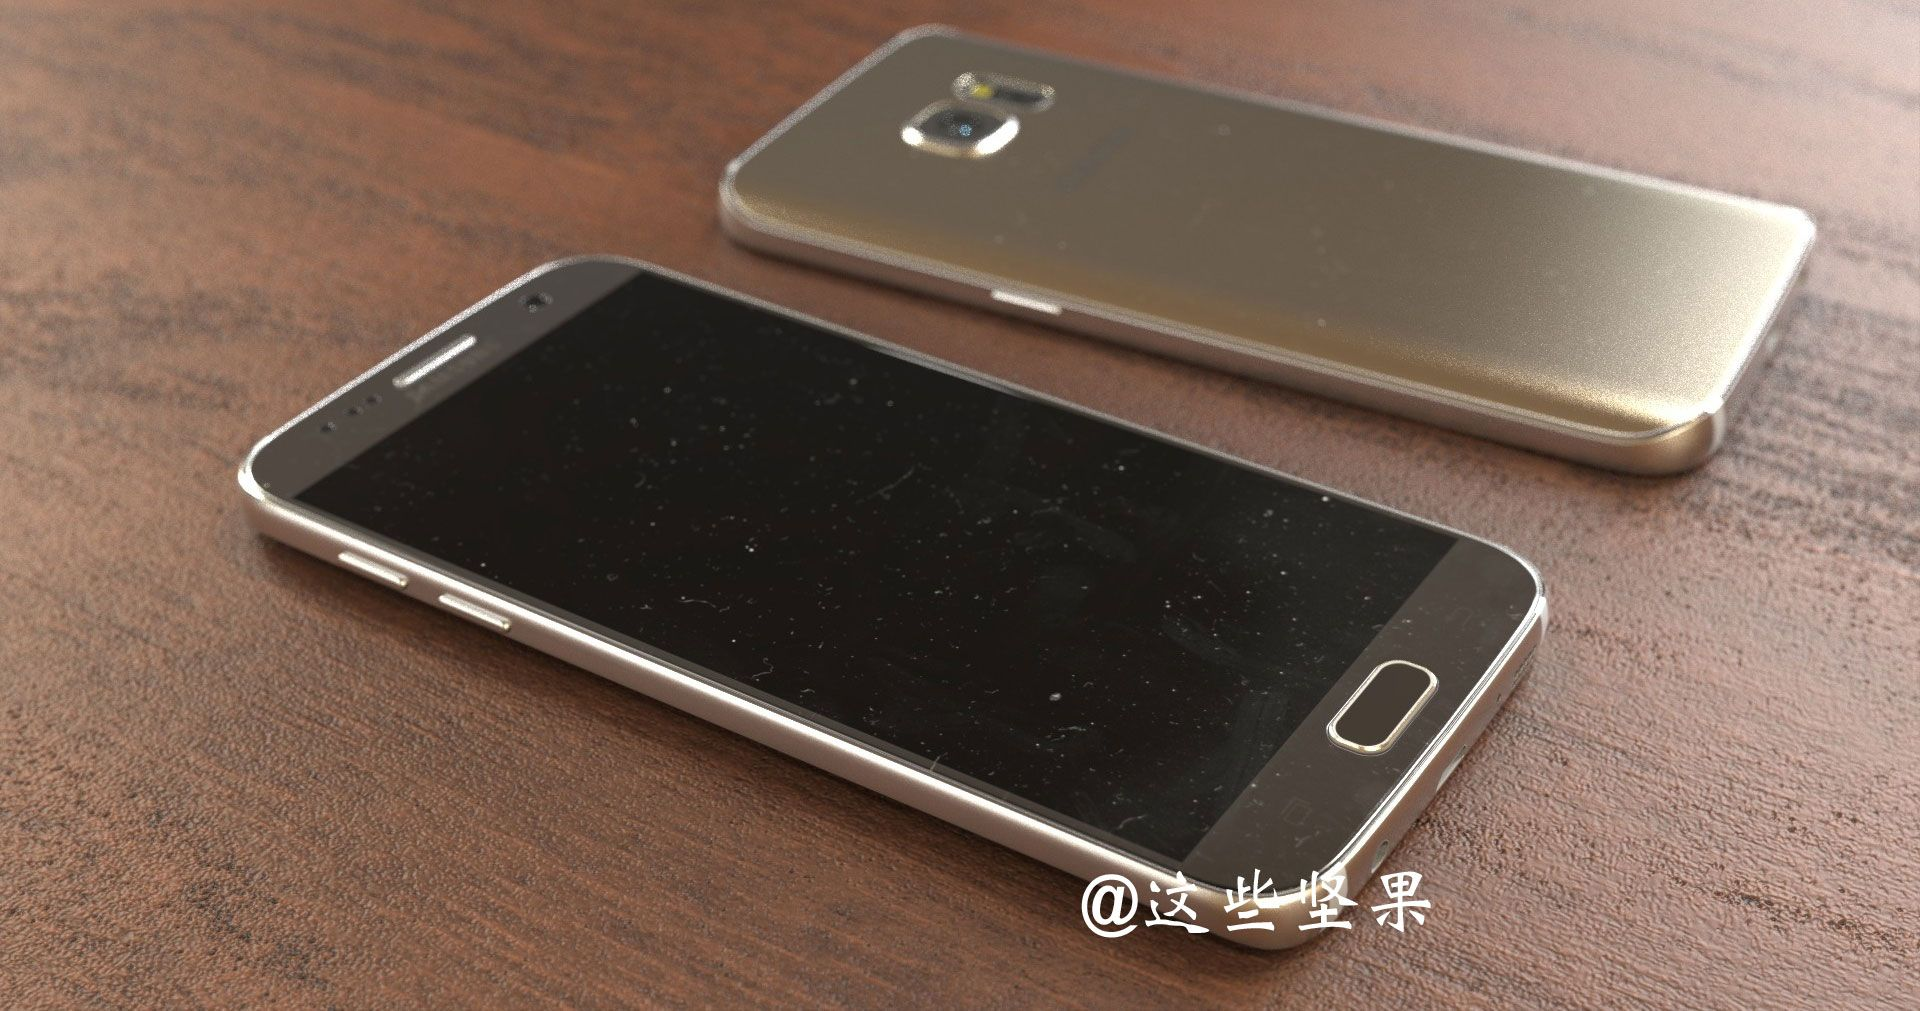 Galaxy S7 3D renders hint at what the next flagship might look like